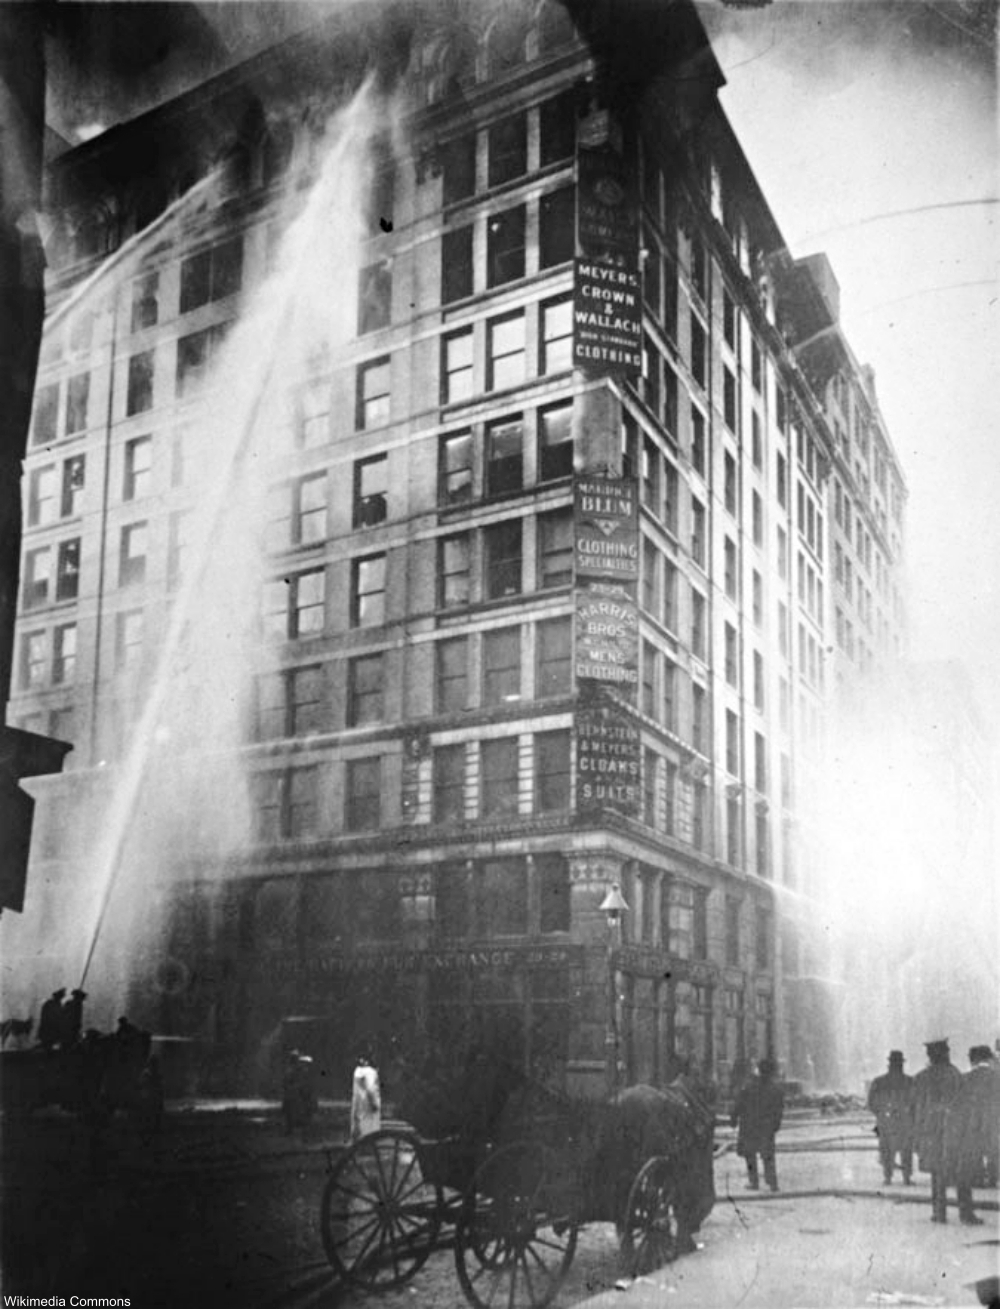 1911 Triangle Shirtwaist Factory Fire